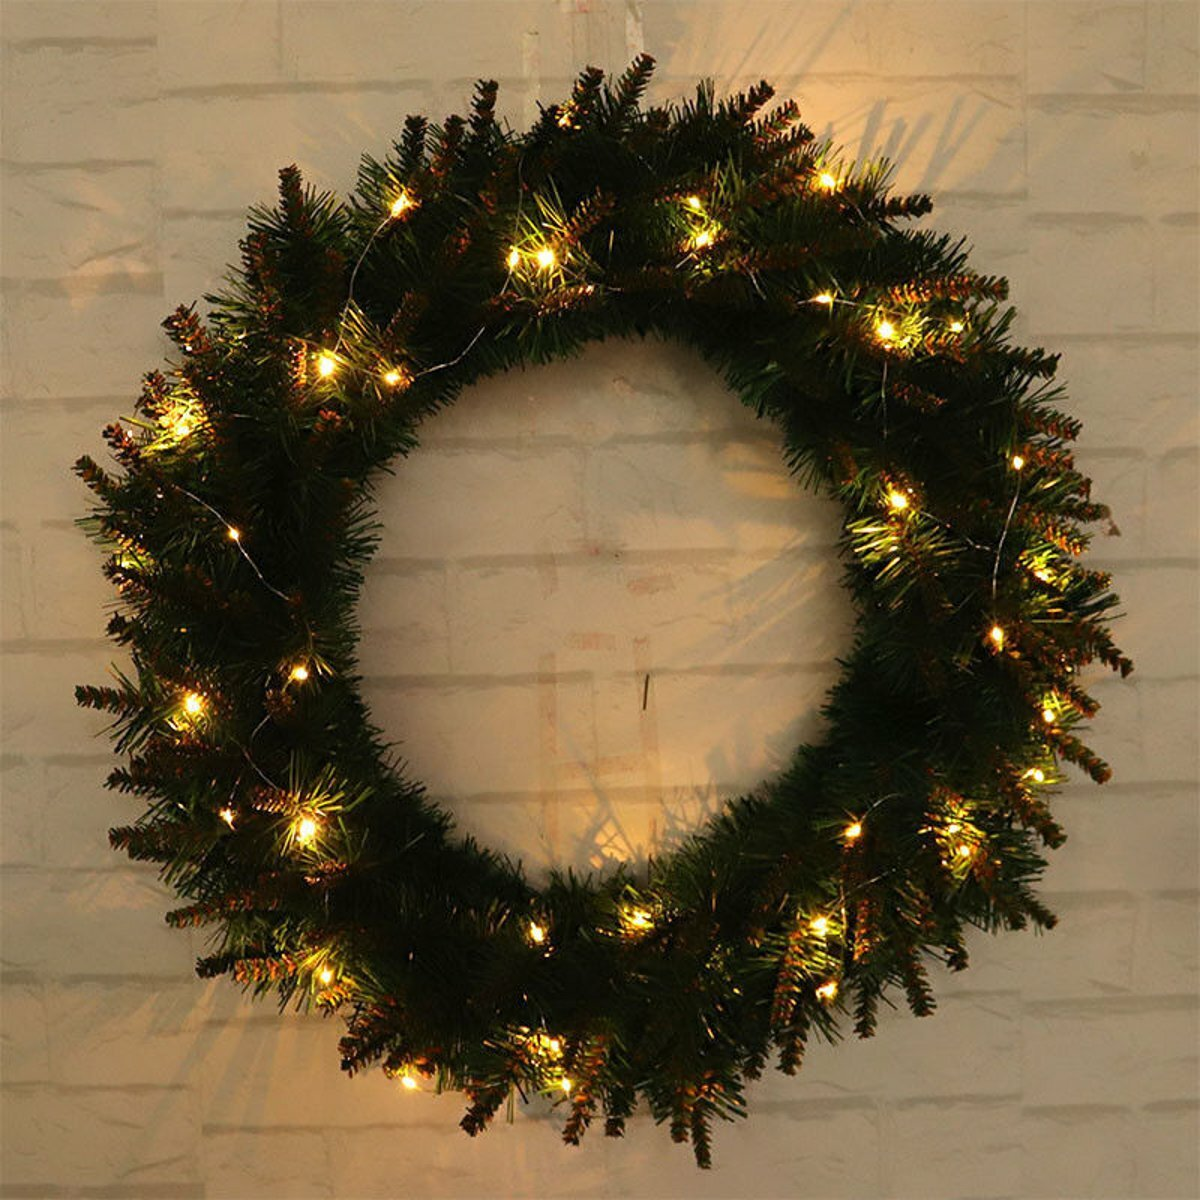 Christmas Wall Hanging Decorations.Led Light Christmas Wreath Tree Door Wall Hanging Party Garland Decorations